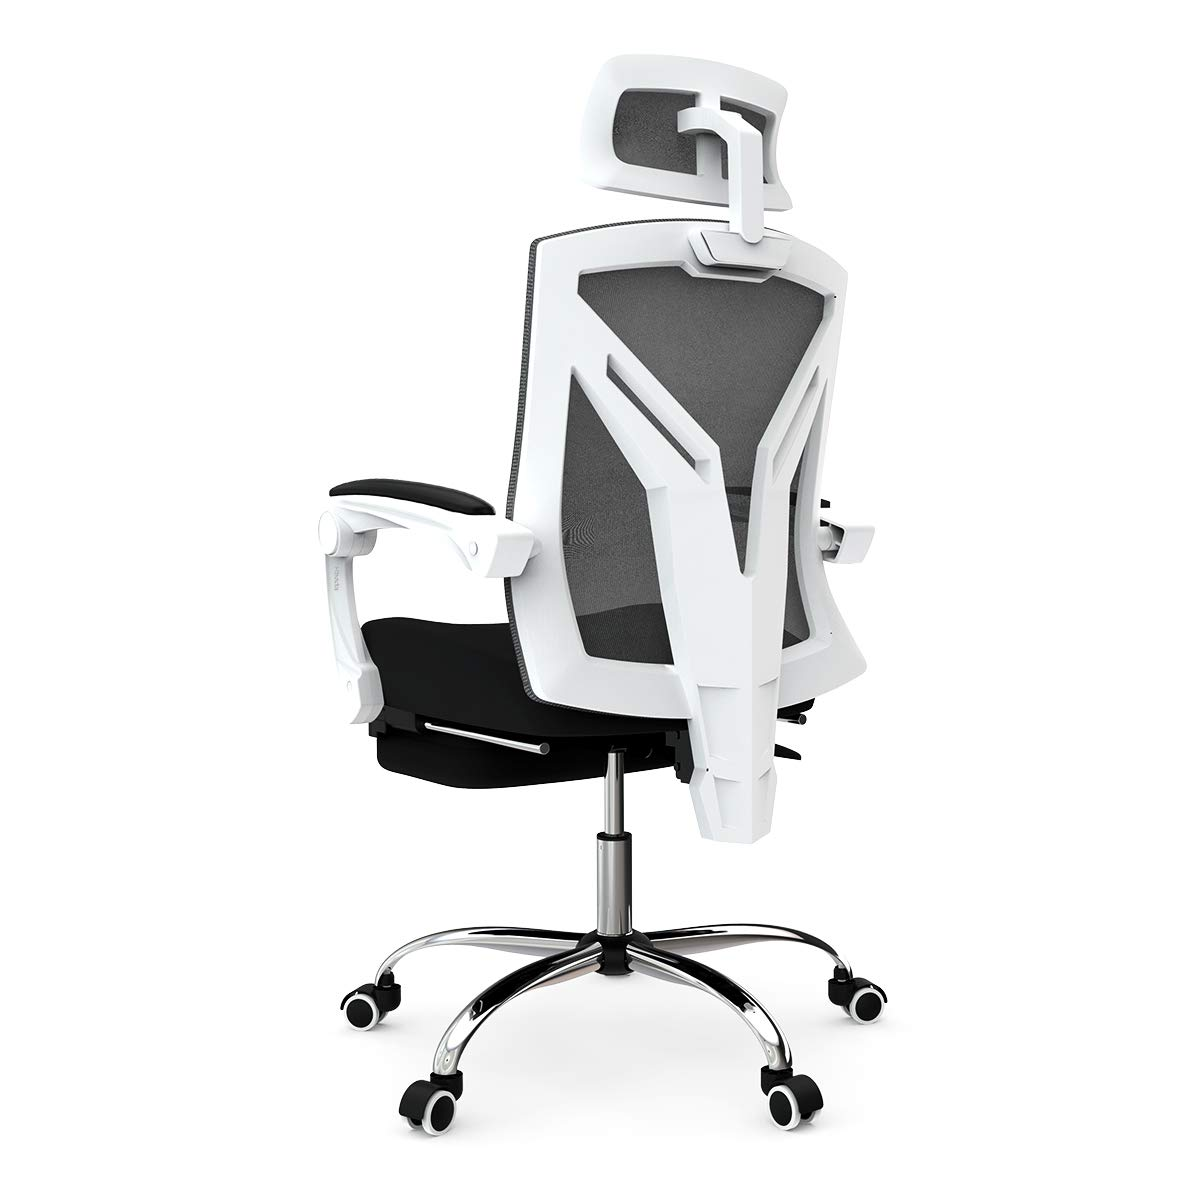 Hbada Ergonomic Office Chair - High-Back Desk Chair Racing Style with Lumbar Support - Height Adjustable Seat,Headrest- Breathable Mesh Back - Soft Foam Seat Cushion with Footrest, White by Hbada (Image #3)